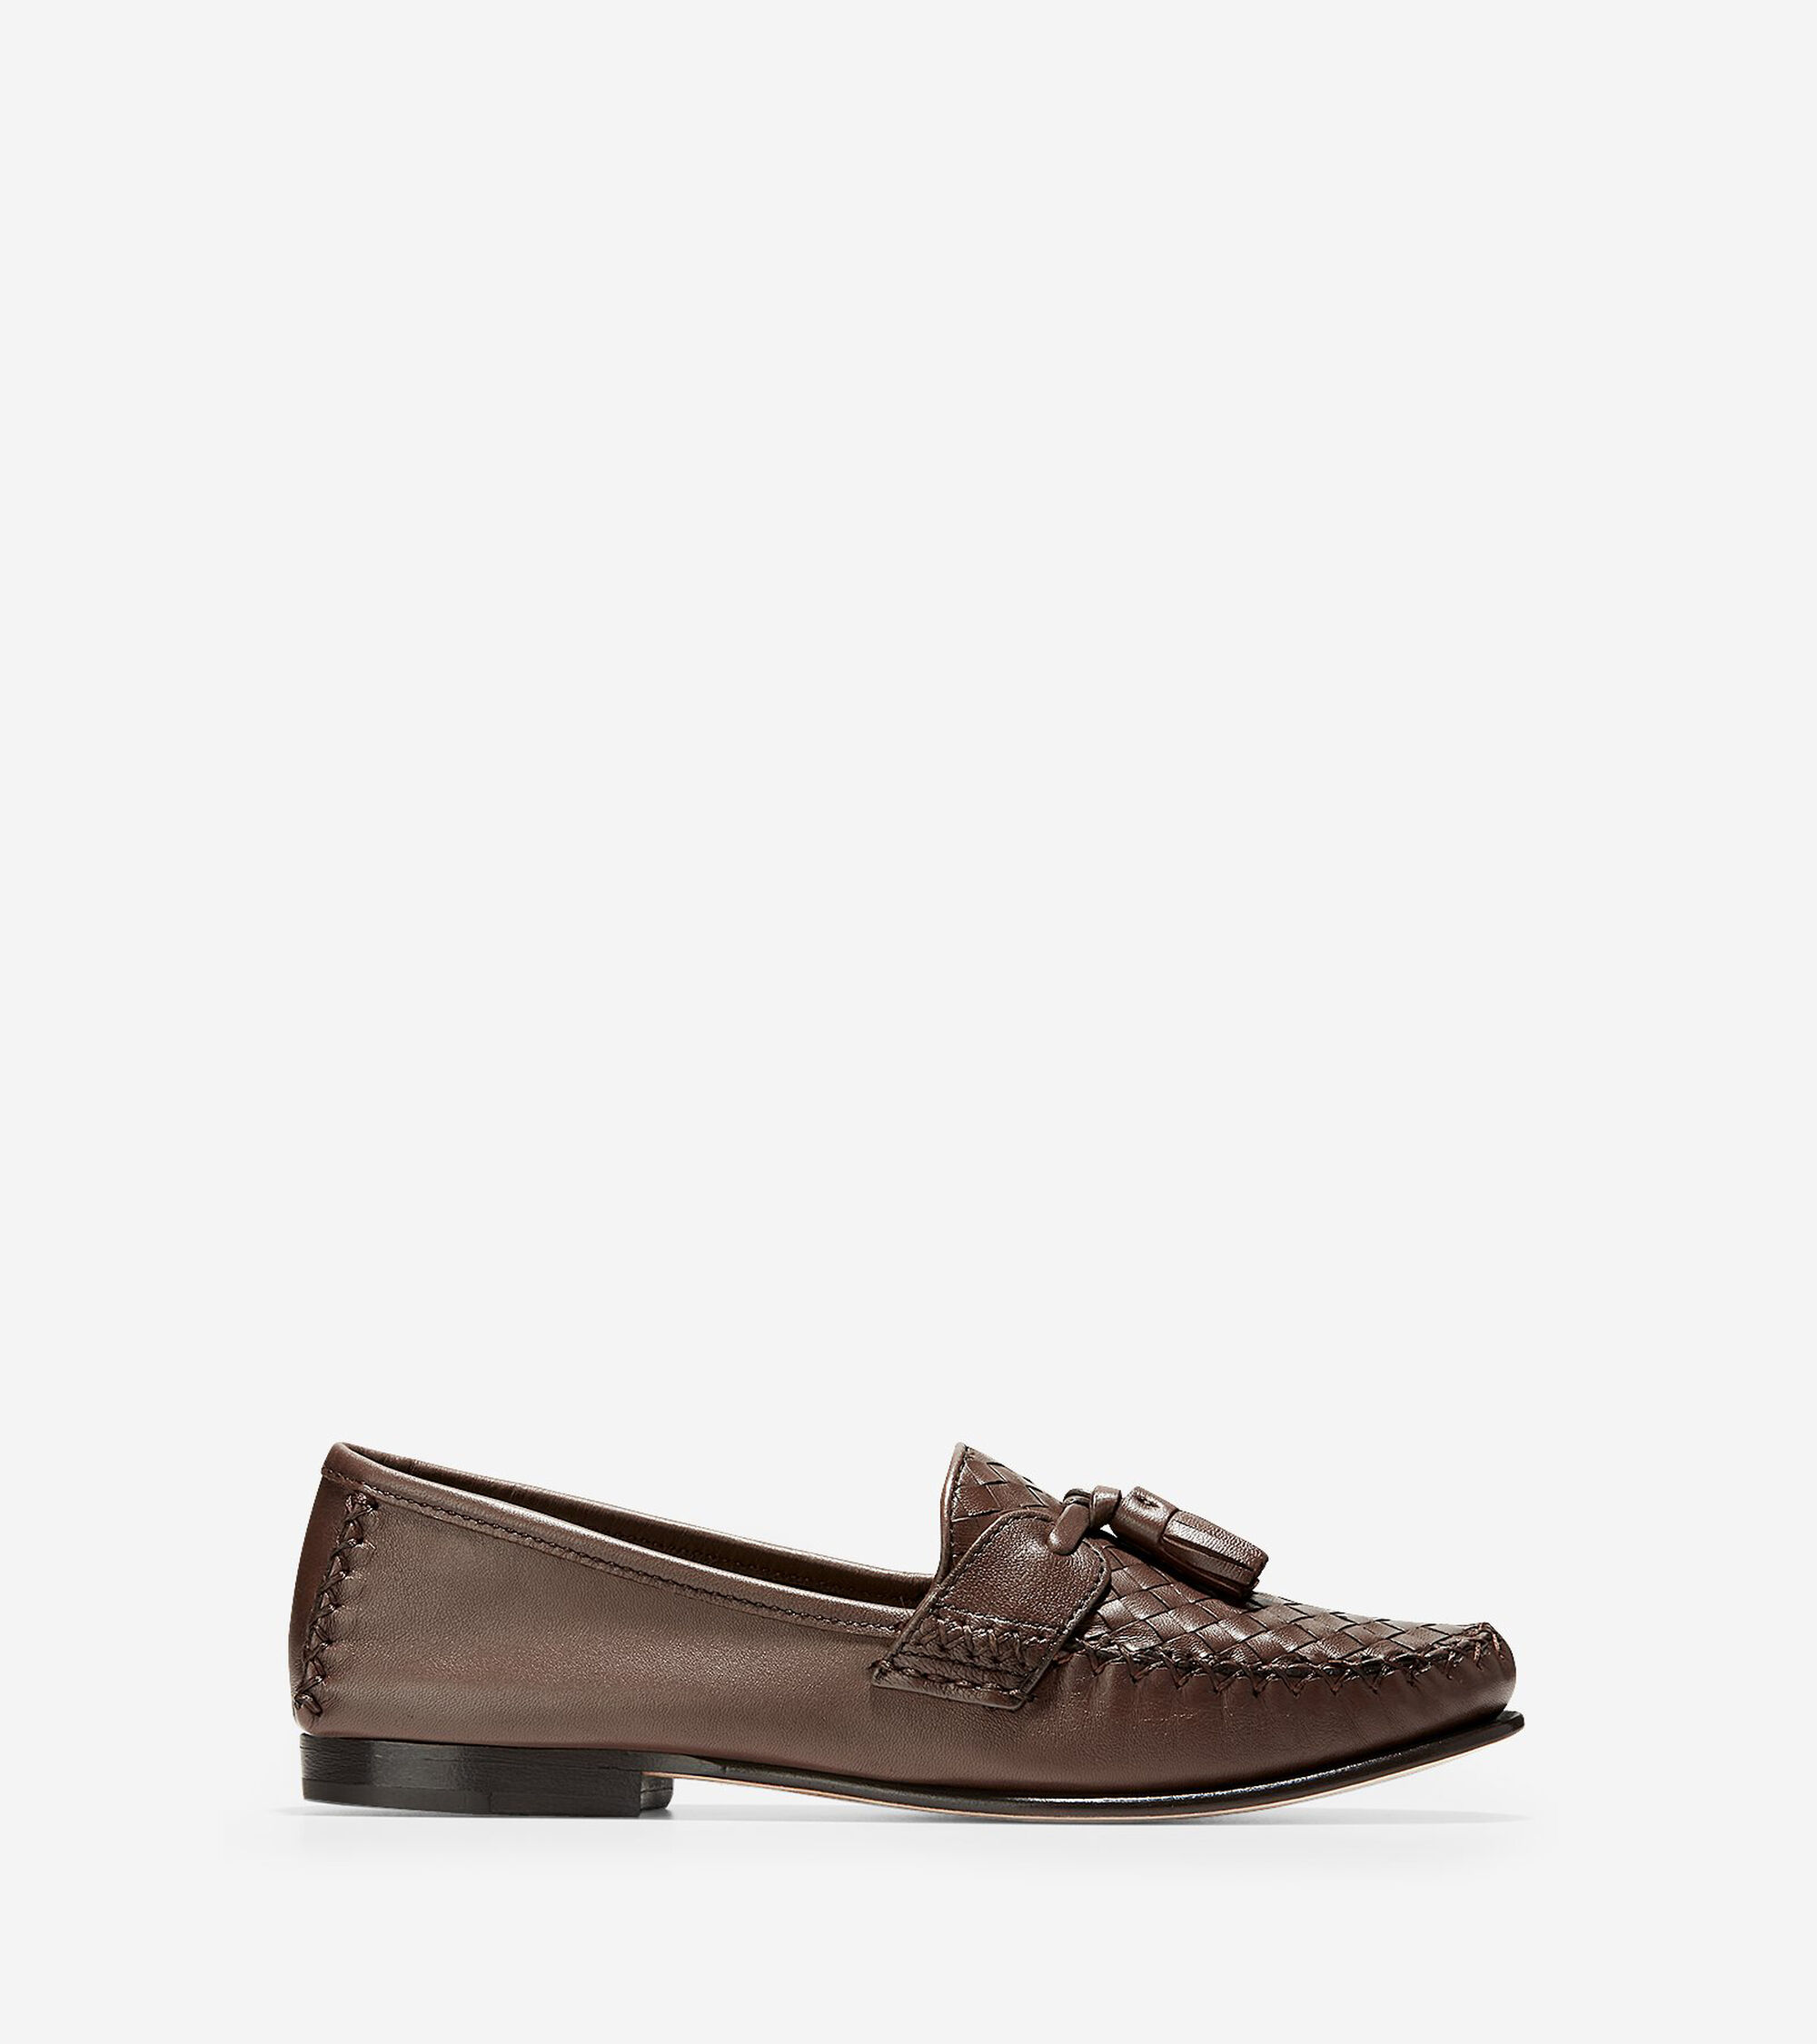 94fcd0b0888 Women s Jagger Soft Weave Loafers in Harvest Brown